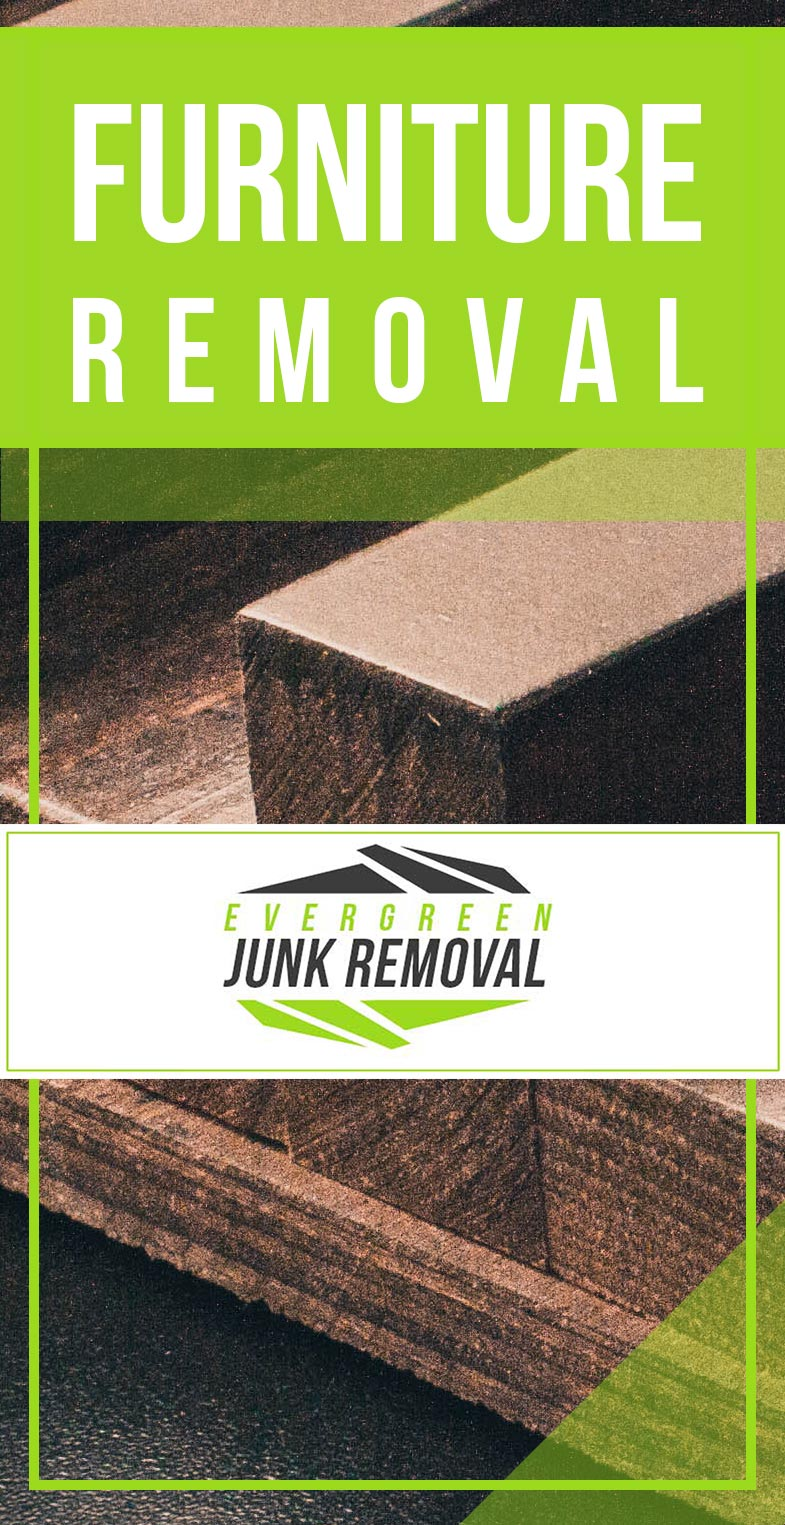 Junk Removal Lantana Furniture Removal